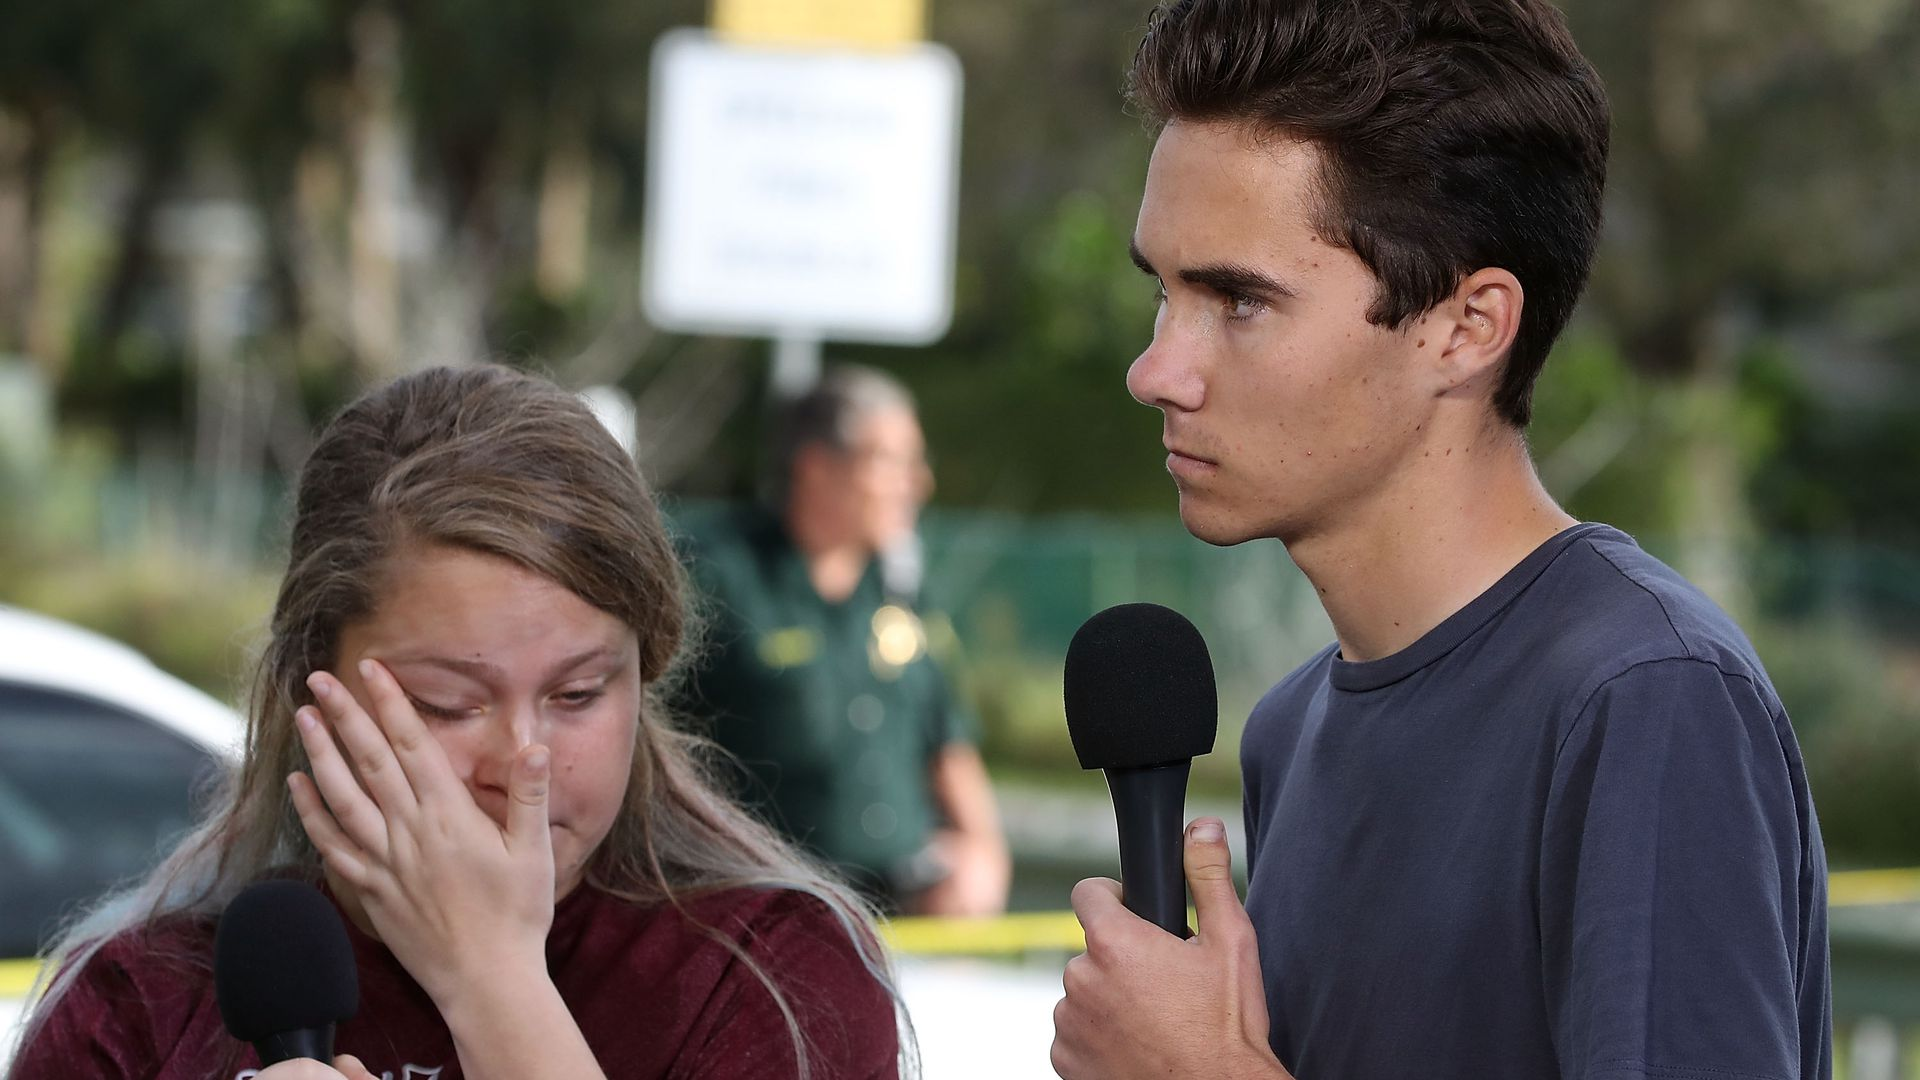 students from parkland shooting